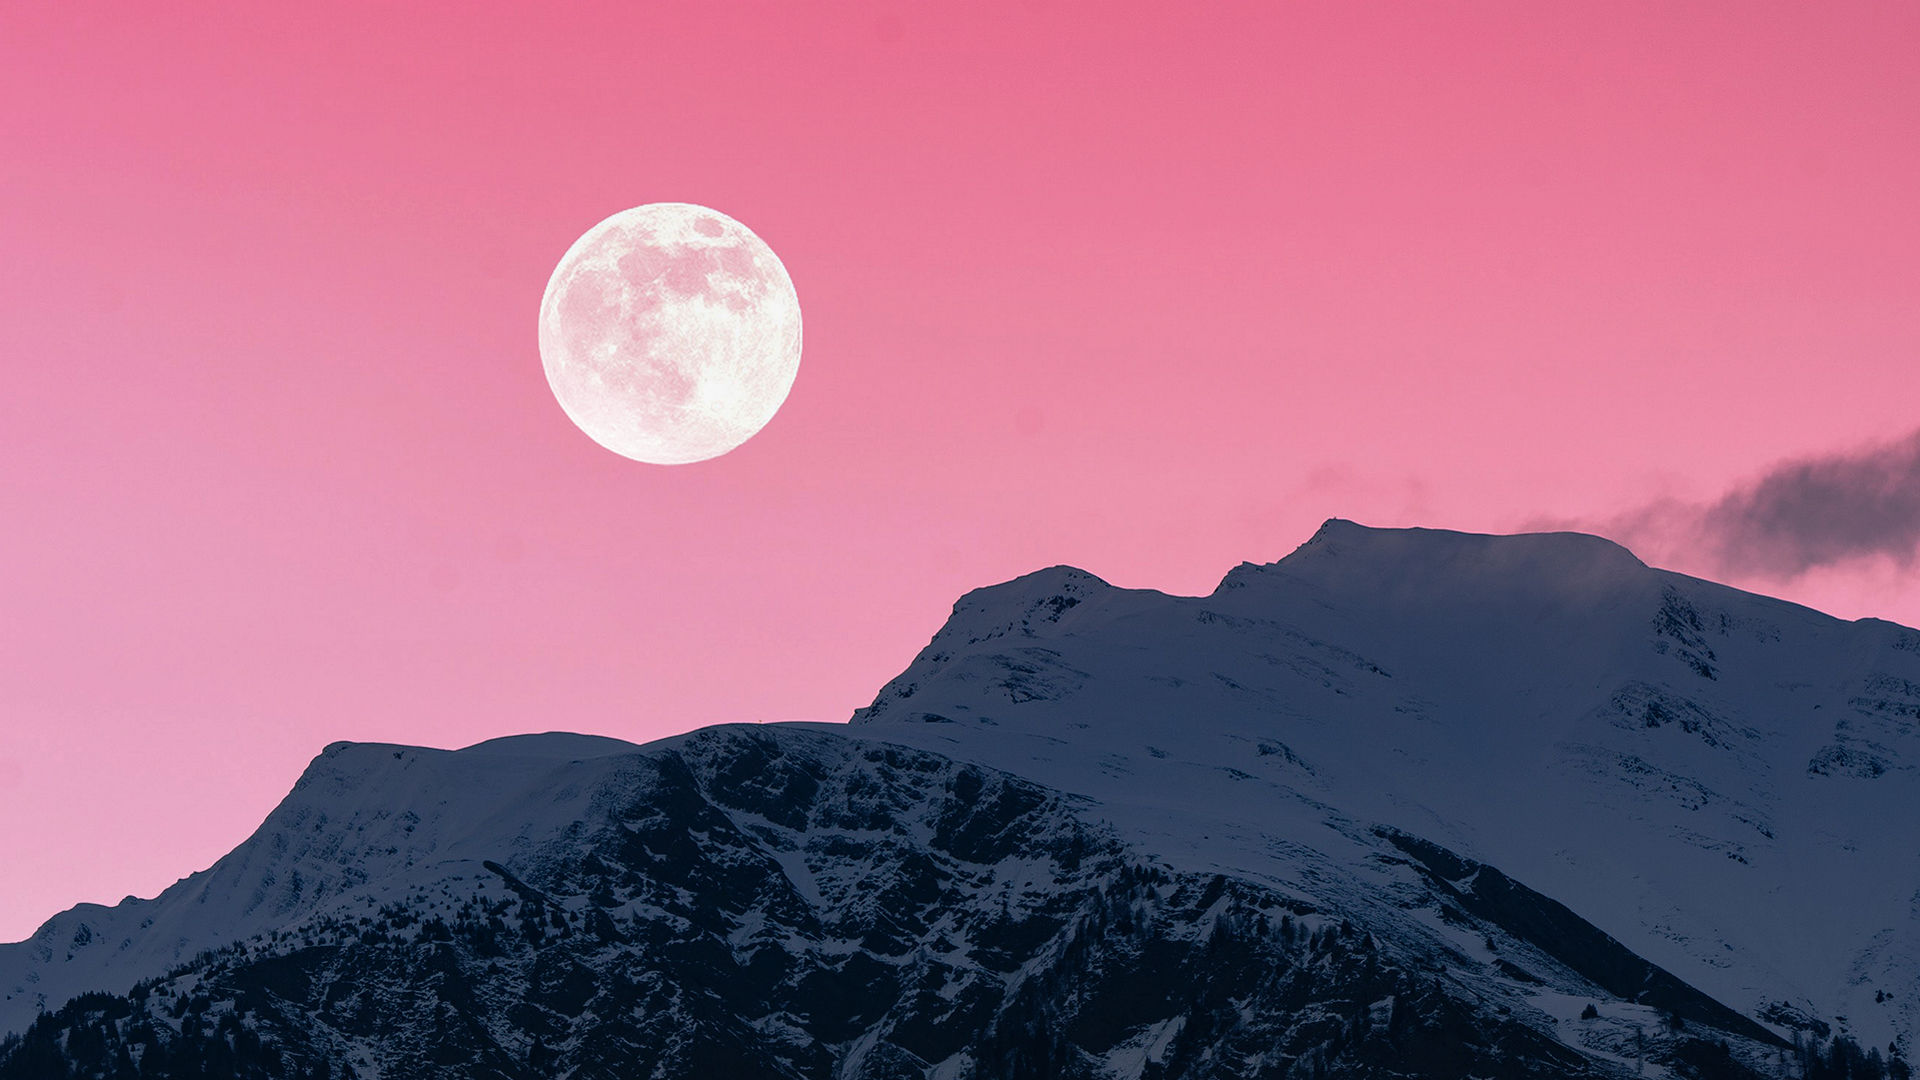 Full Pink Moon adorns the April sky